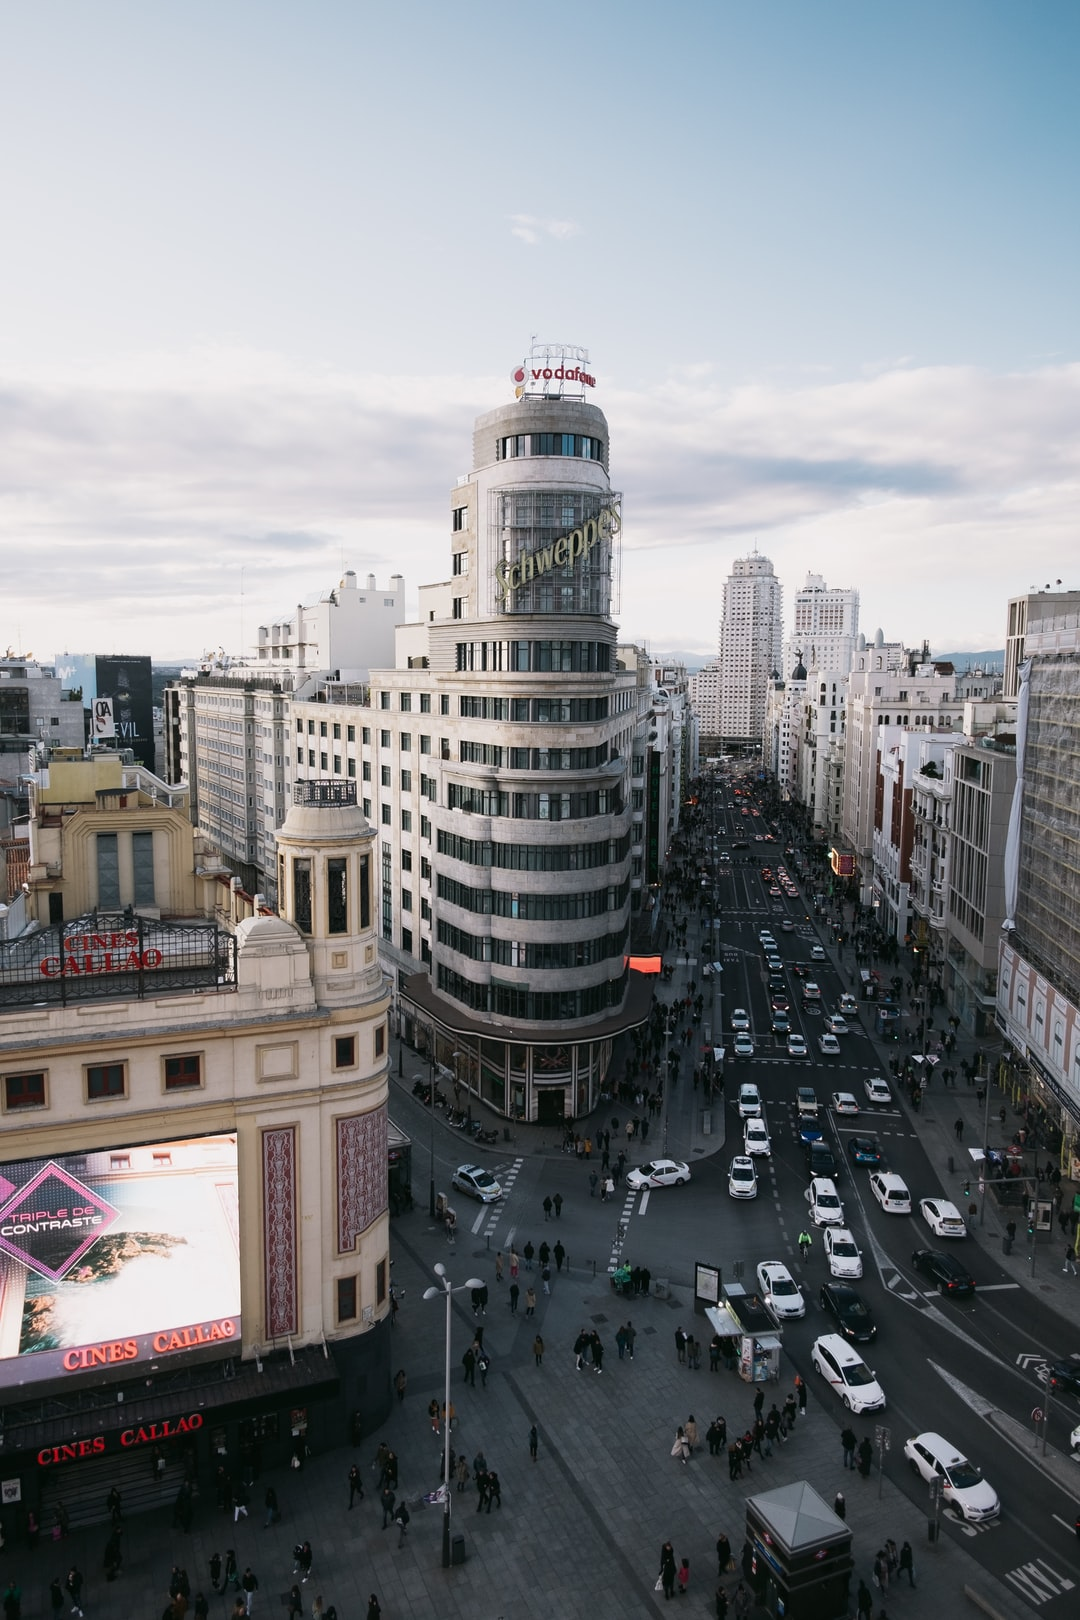 Life in Madrid. What's not to love?